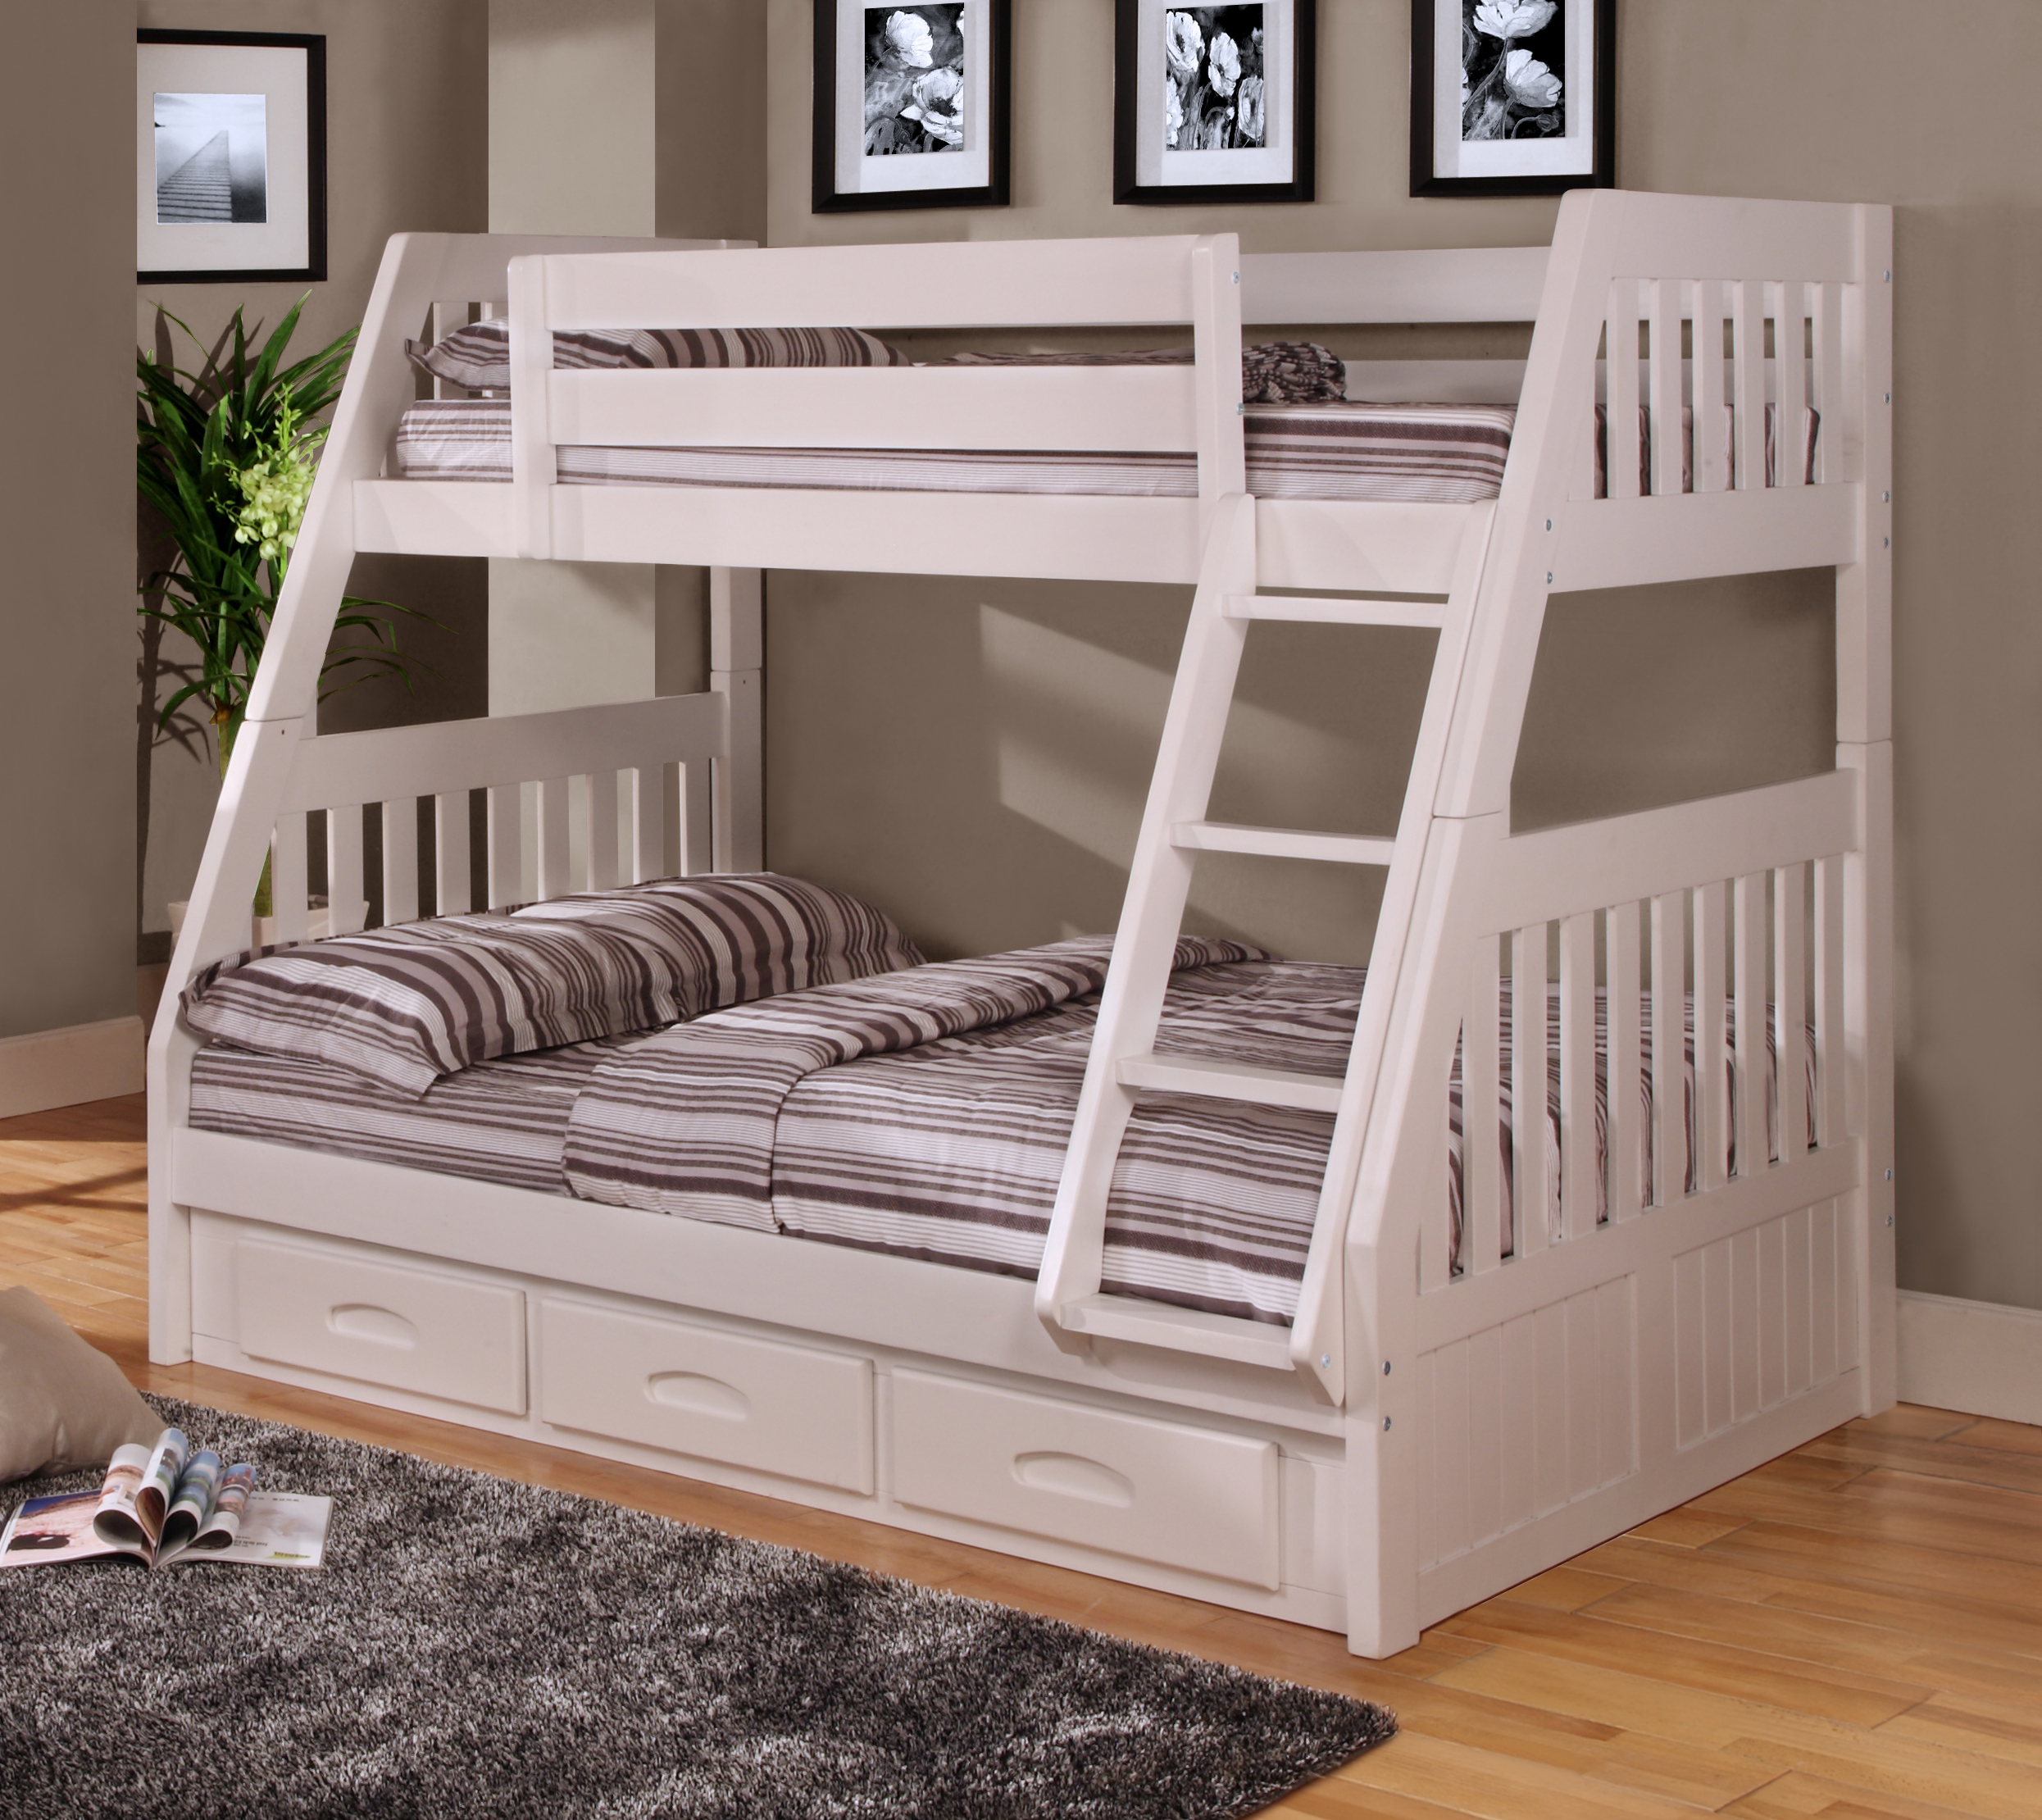 american furniture classics model 0218tfw solid pine twinfull bunk bed with